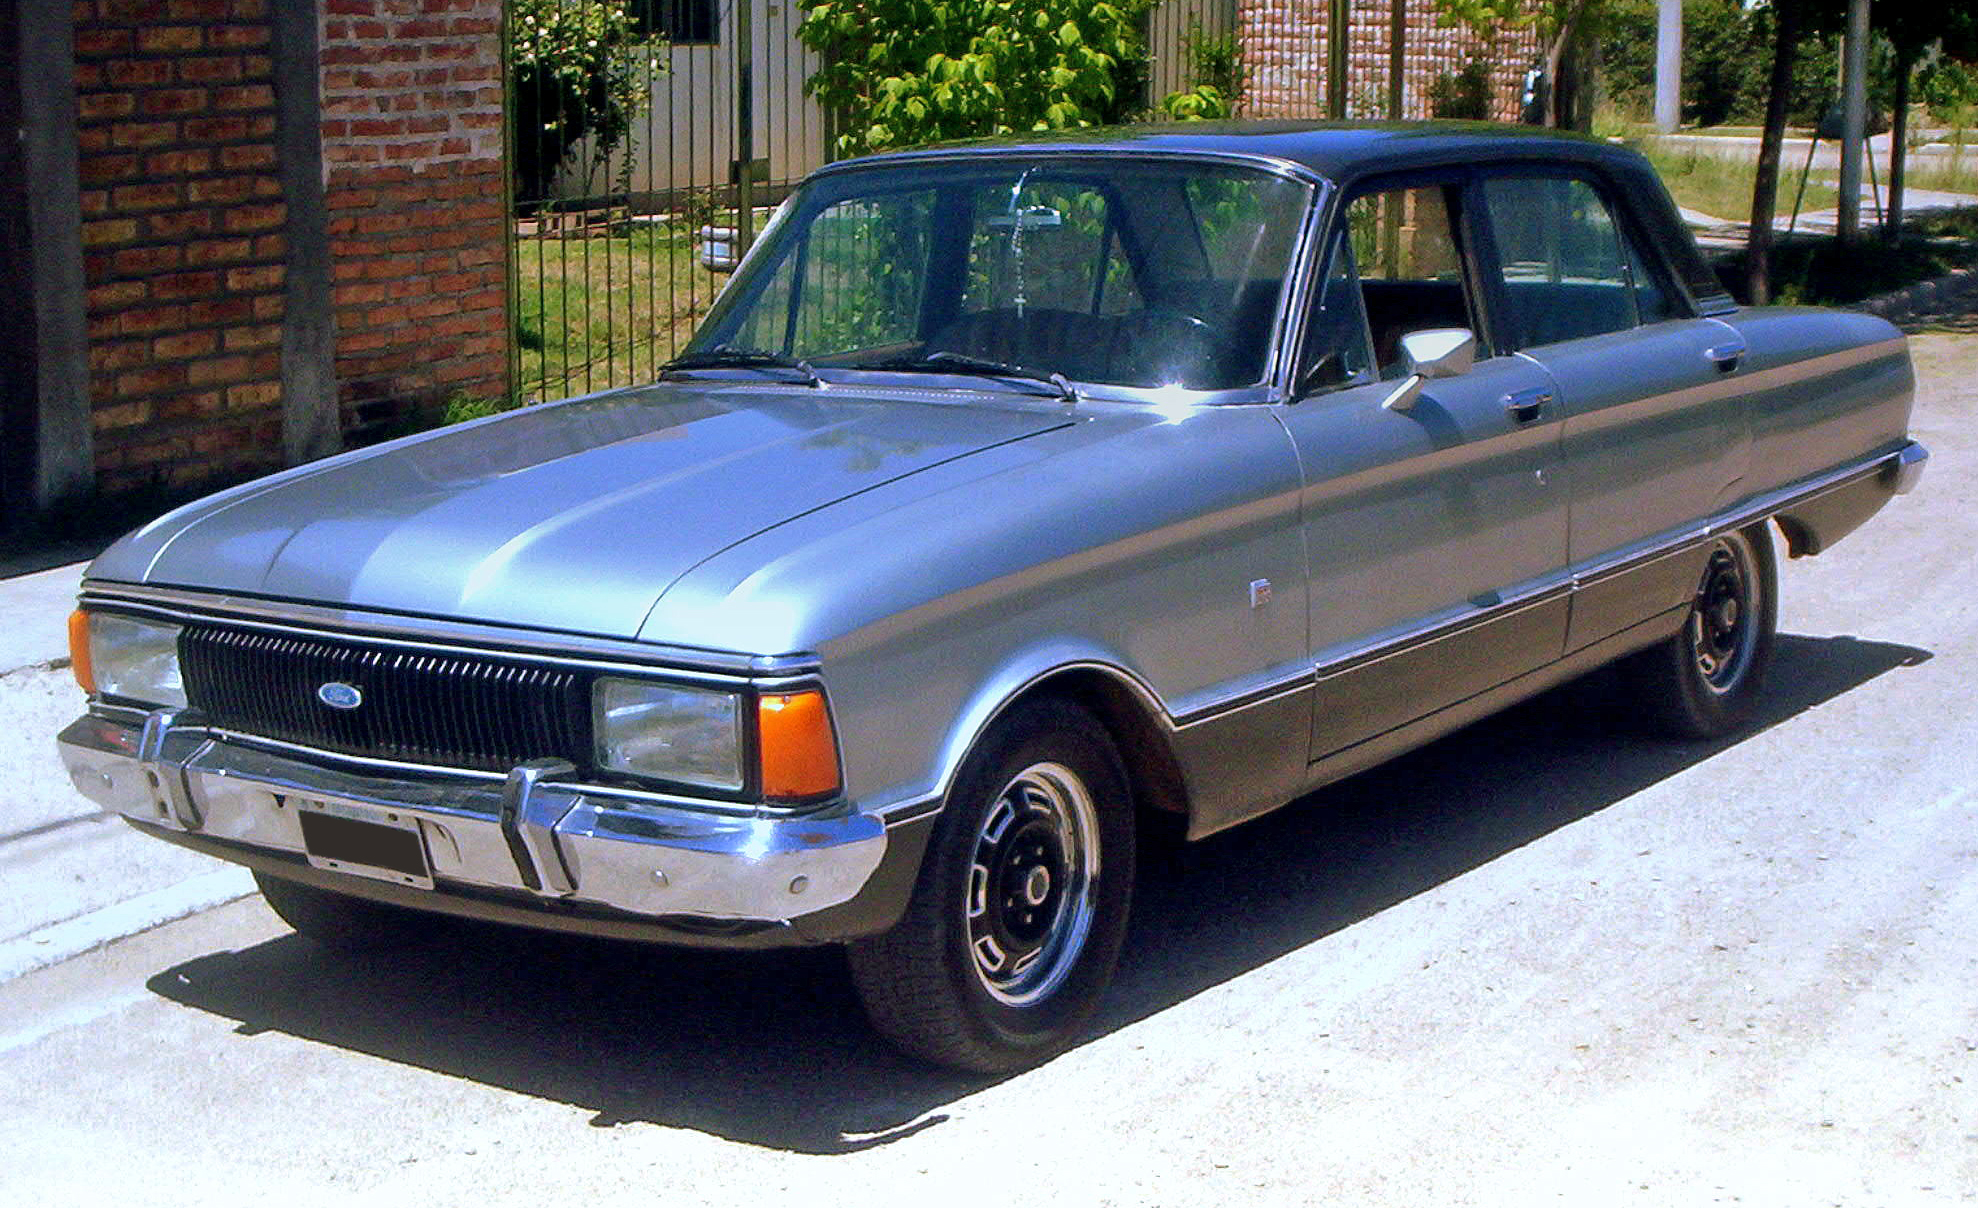 File:Ford Falcon Sprint.jpg